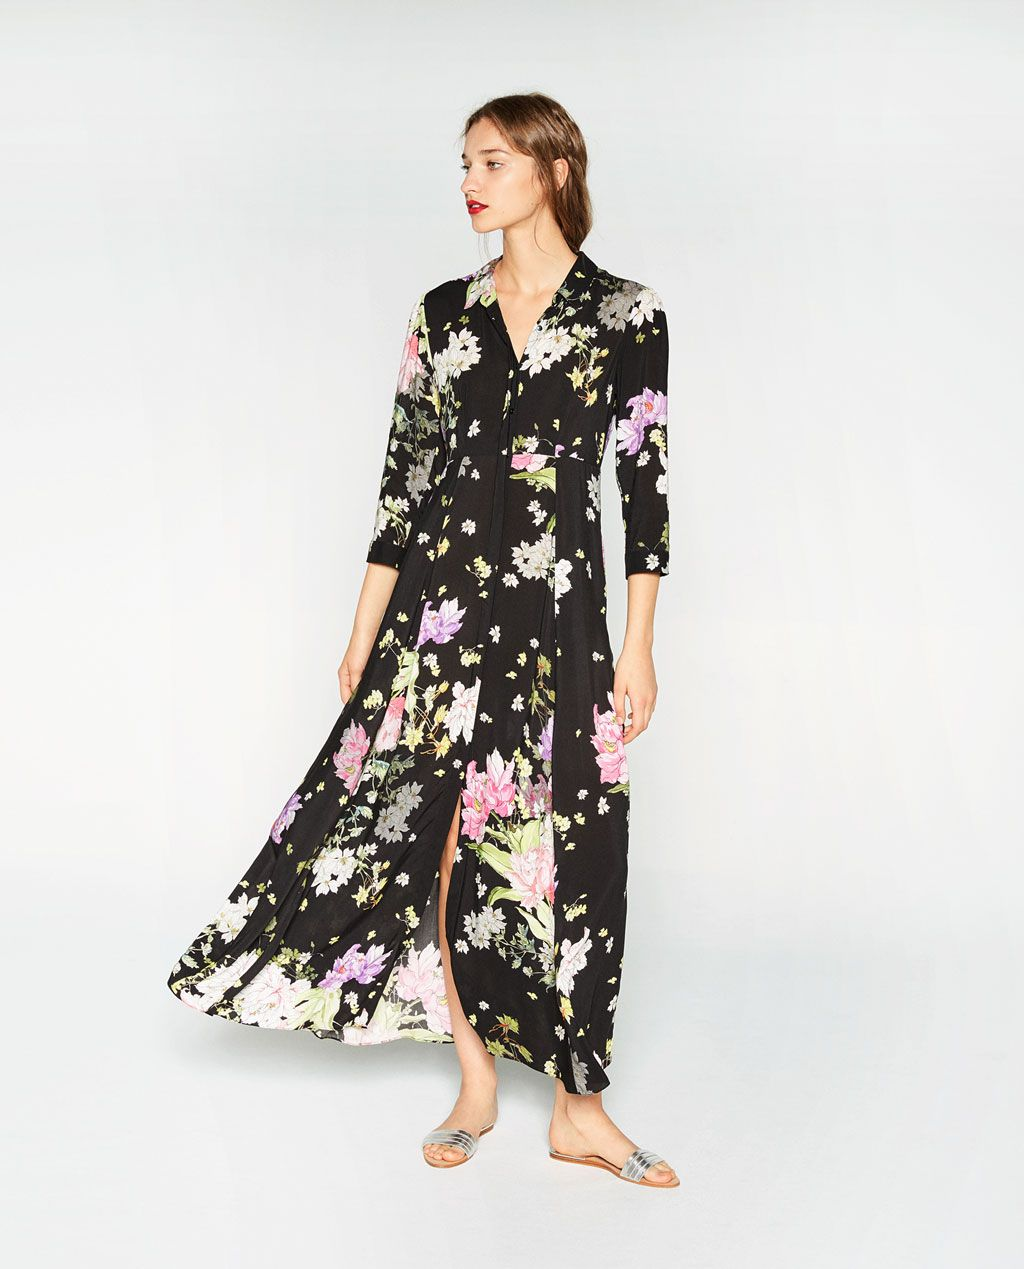 image 1 de robe imprim e fleurs de zara robiches pinterest robes imprim es zara et robes. Black Bedroom Furniture Sets. Home Design Ideas